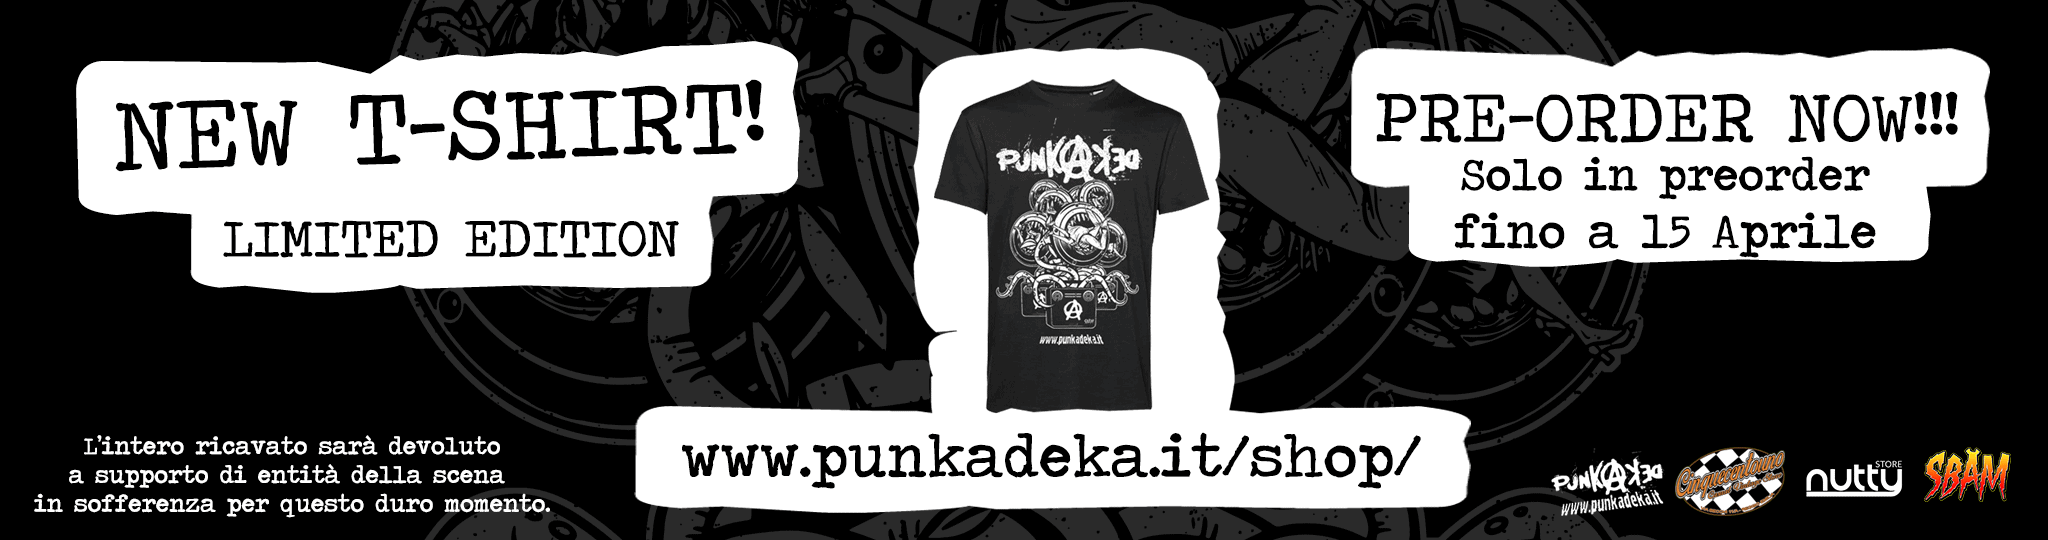 Punkadeka.it T-SHIRT PRE-ORDER NOW